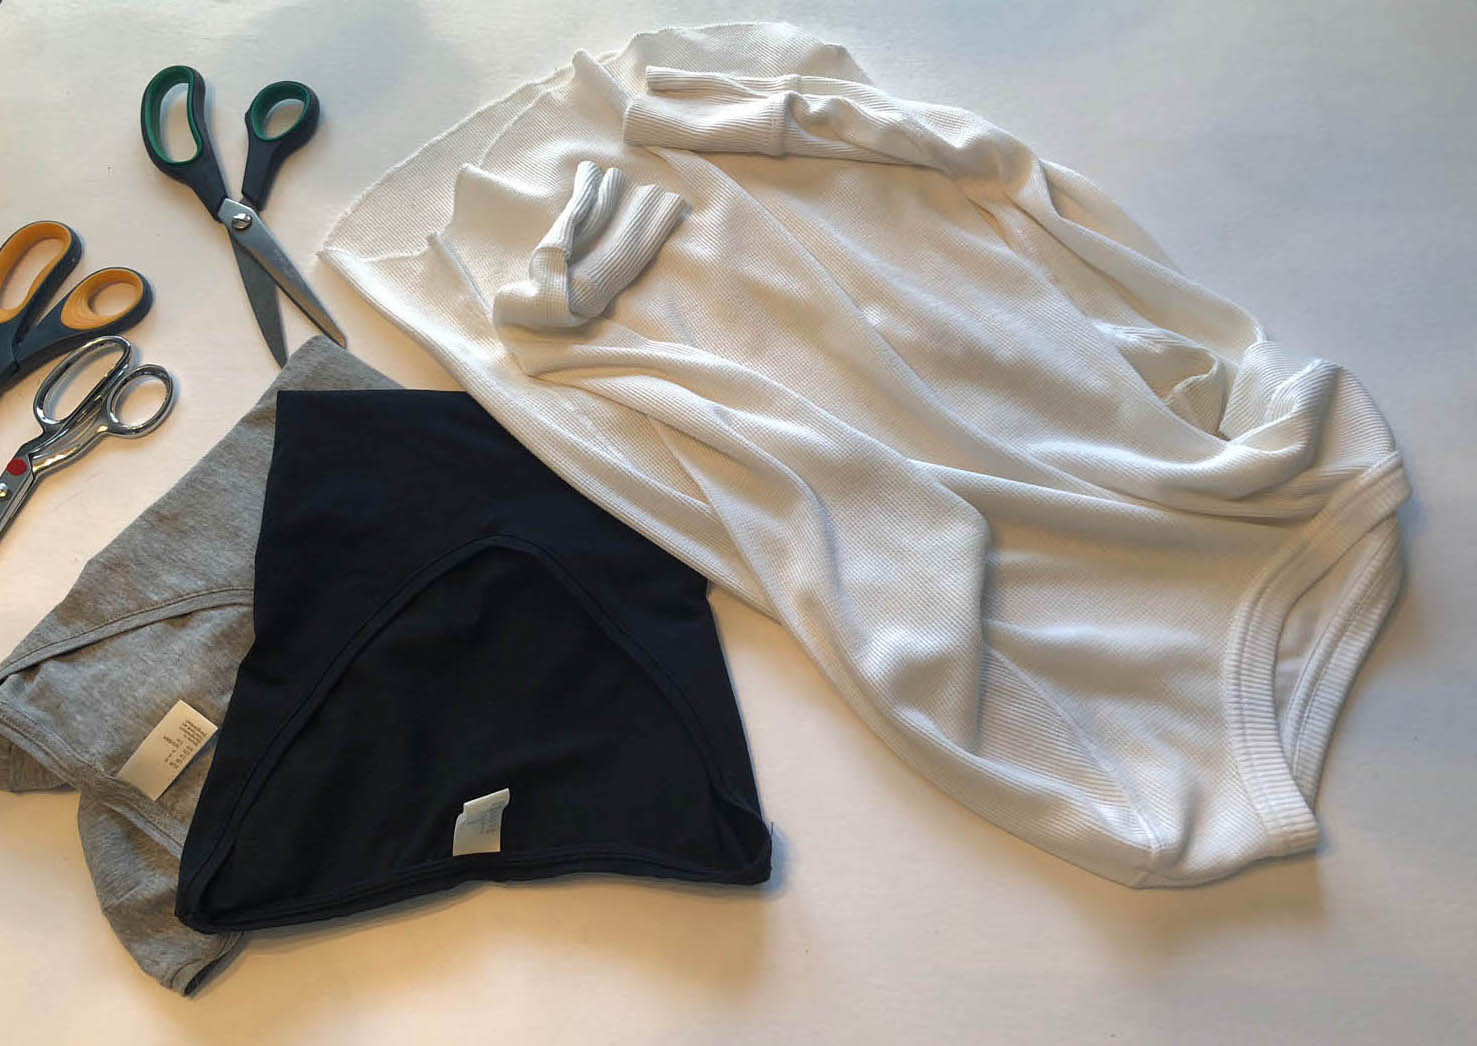 Trimming the hem and sleeves to make a fringed long sleeve t-shirt